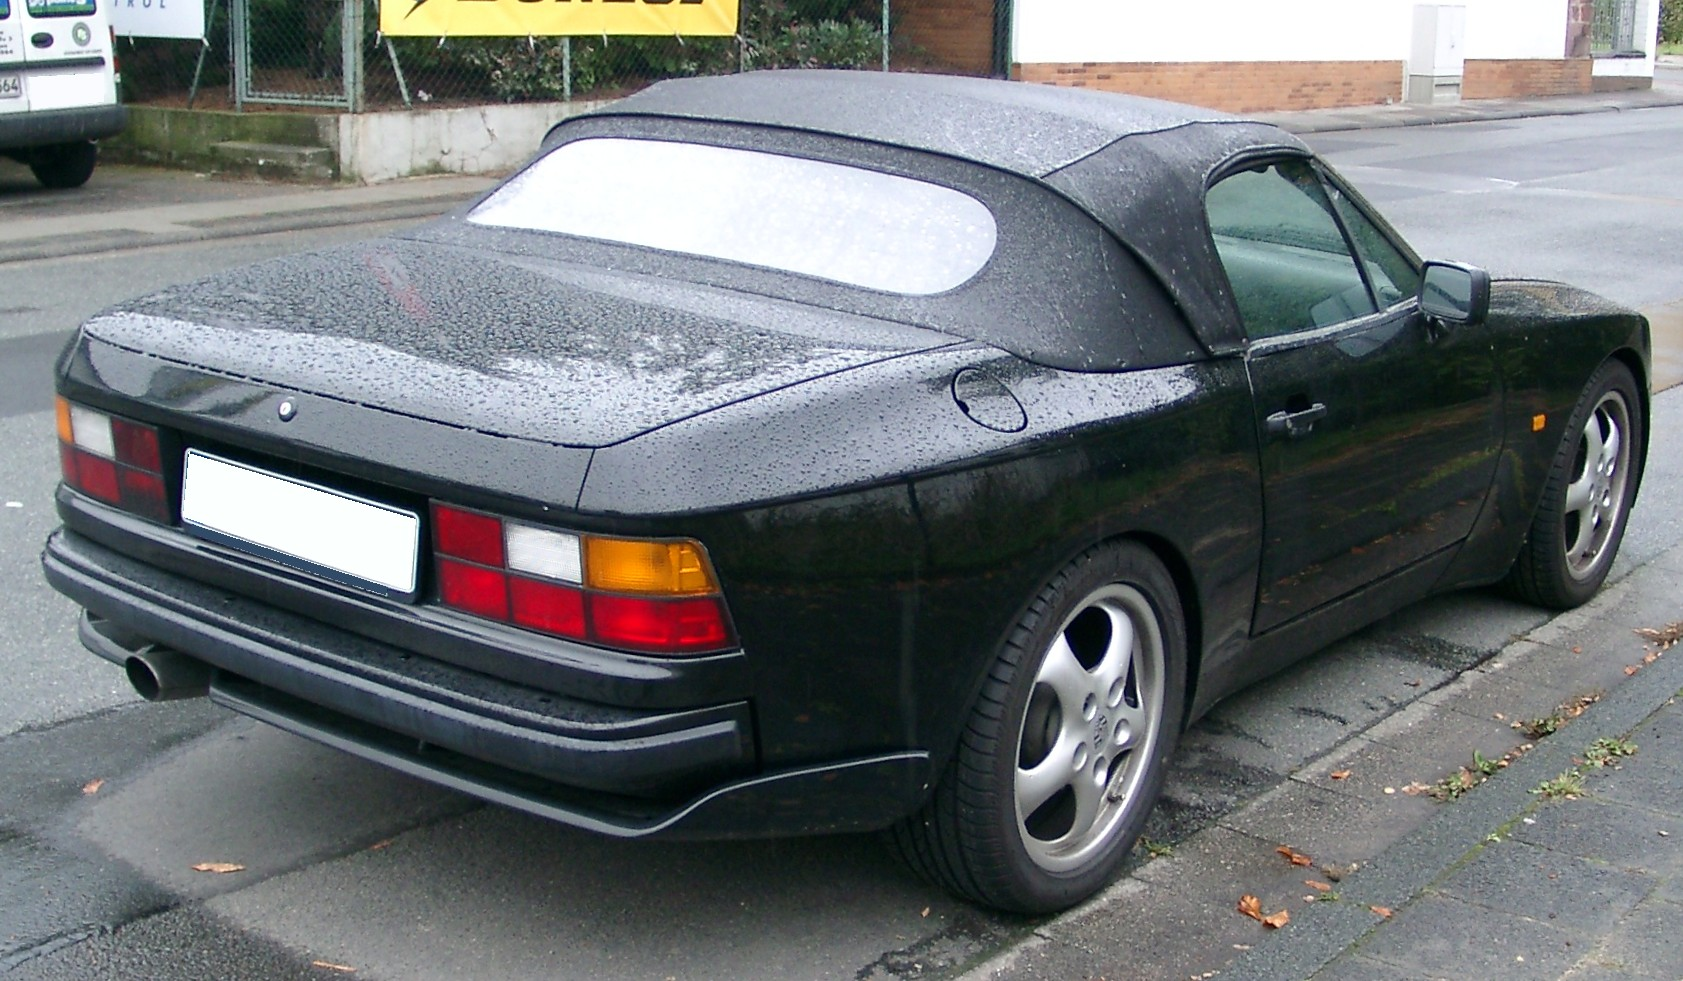 Porsche 944 cabriolet (365 comments) Views 6316 Rating 20